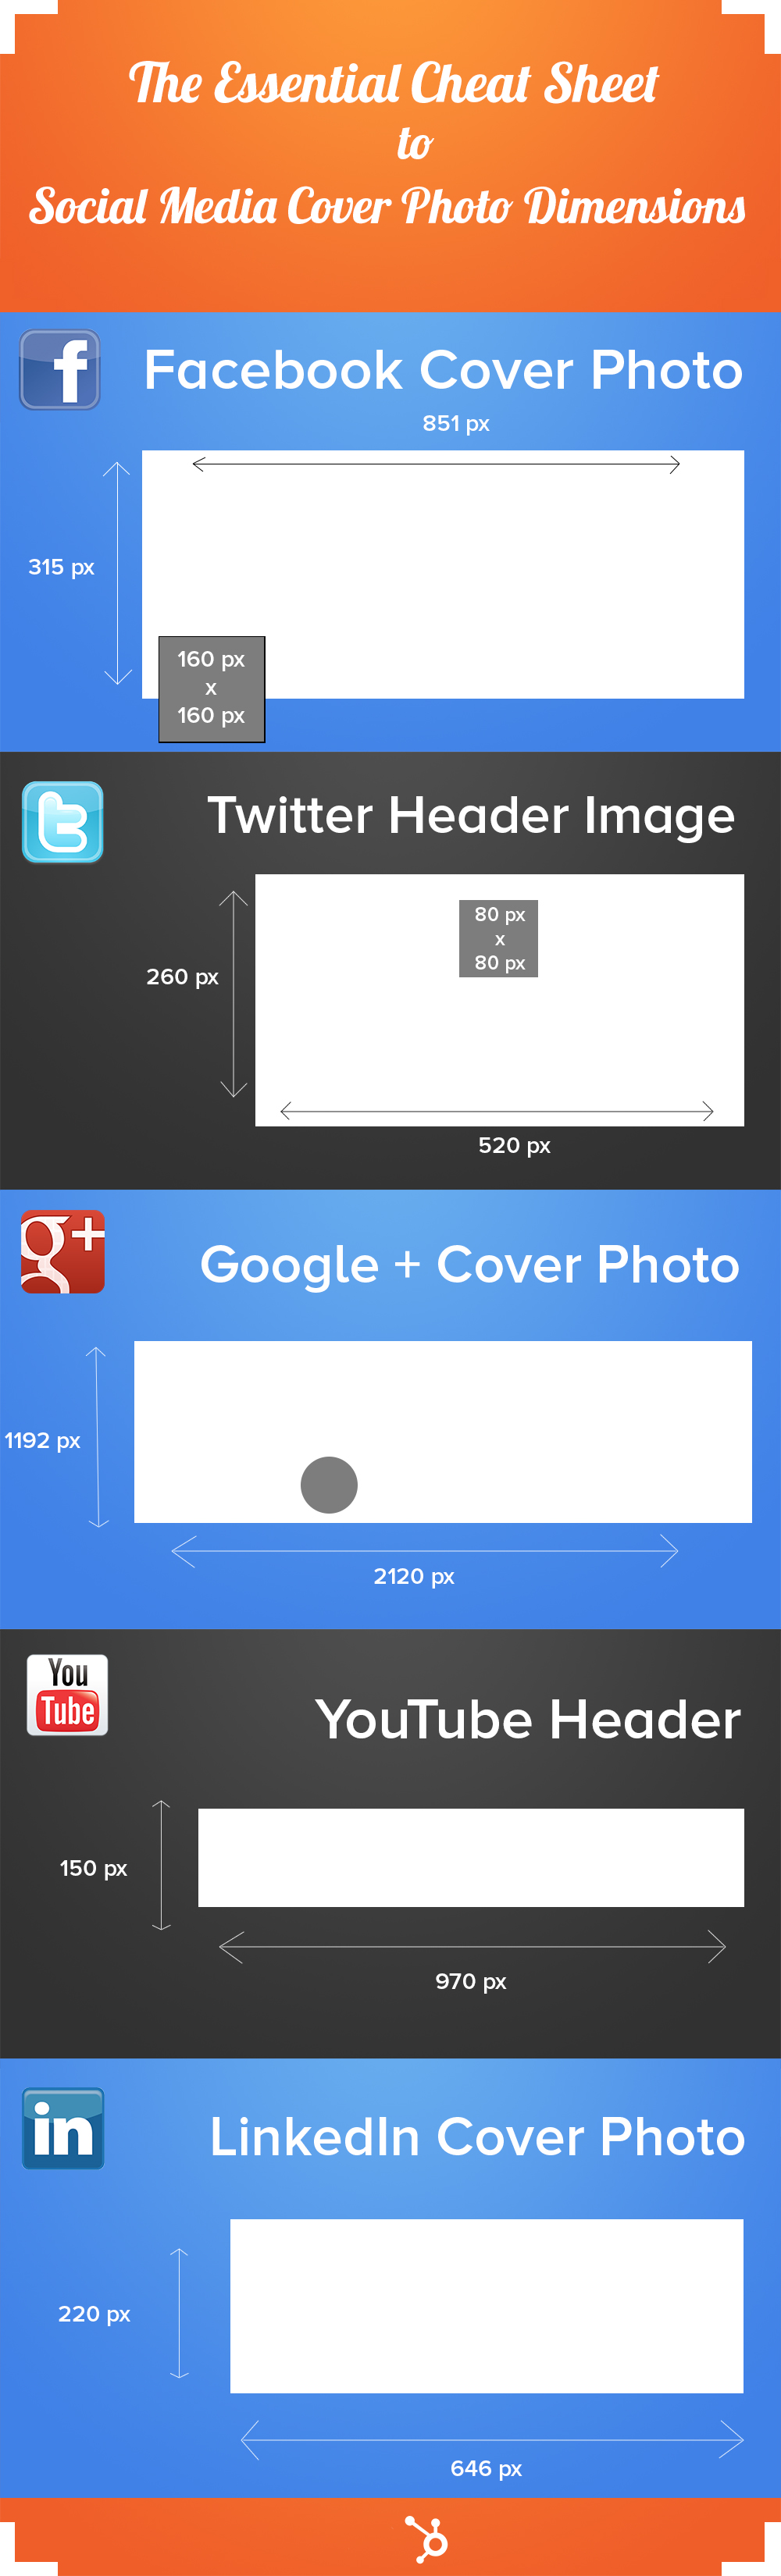 Essential_Cheat_Sheet_to_Social_Media_Cover_Photos